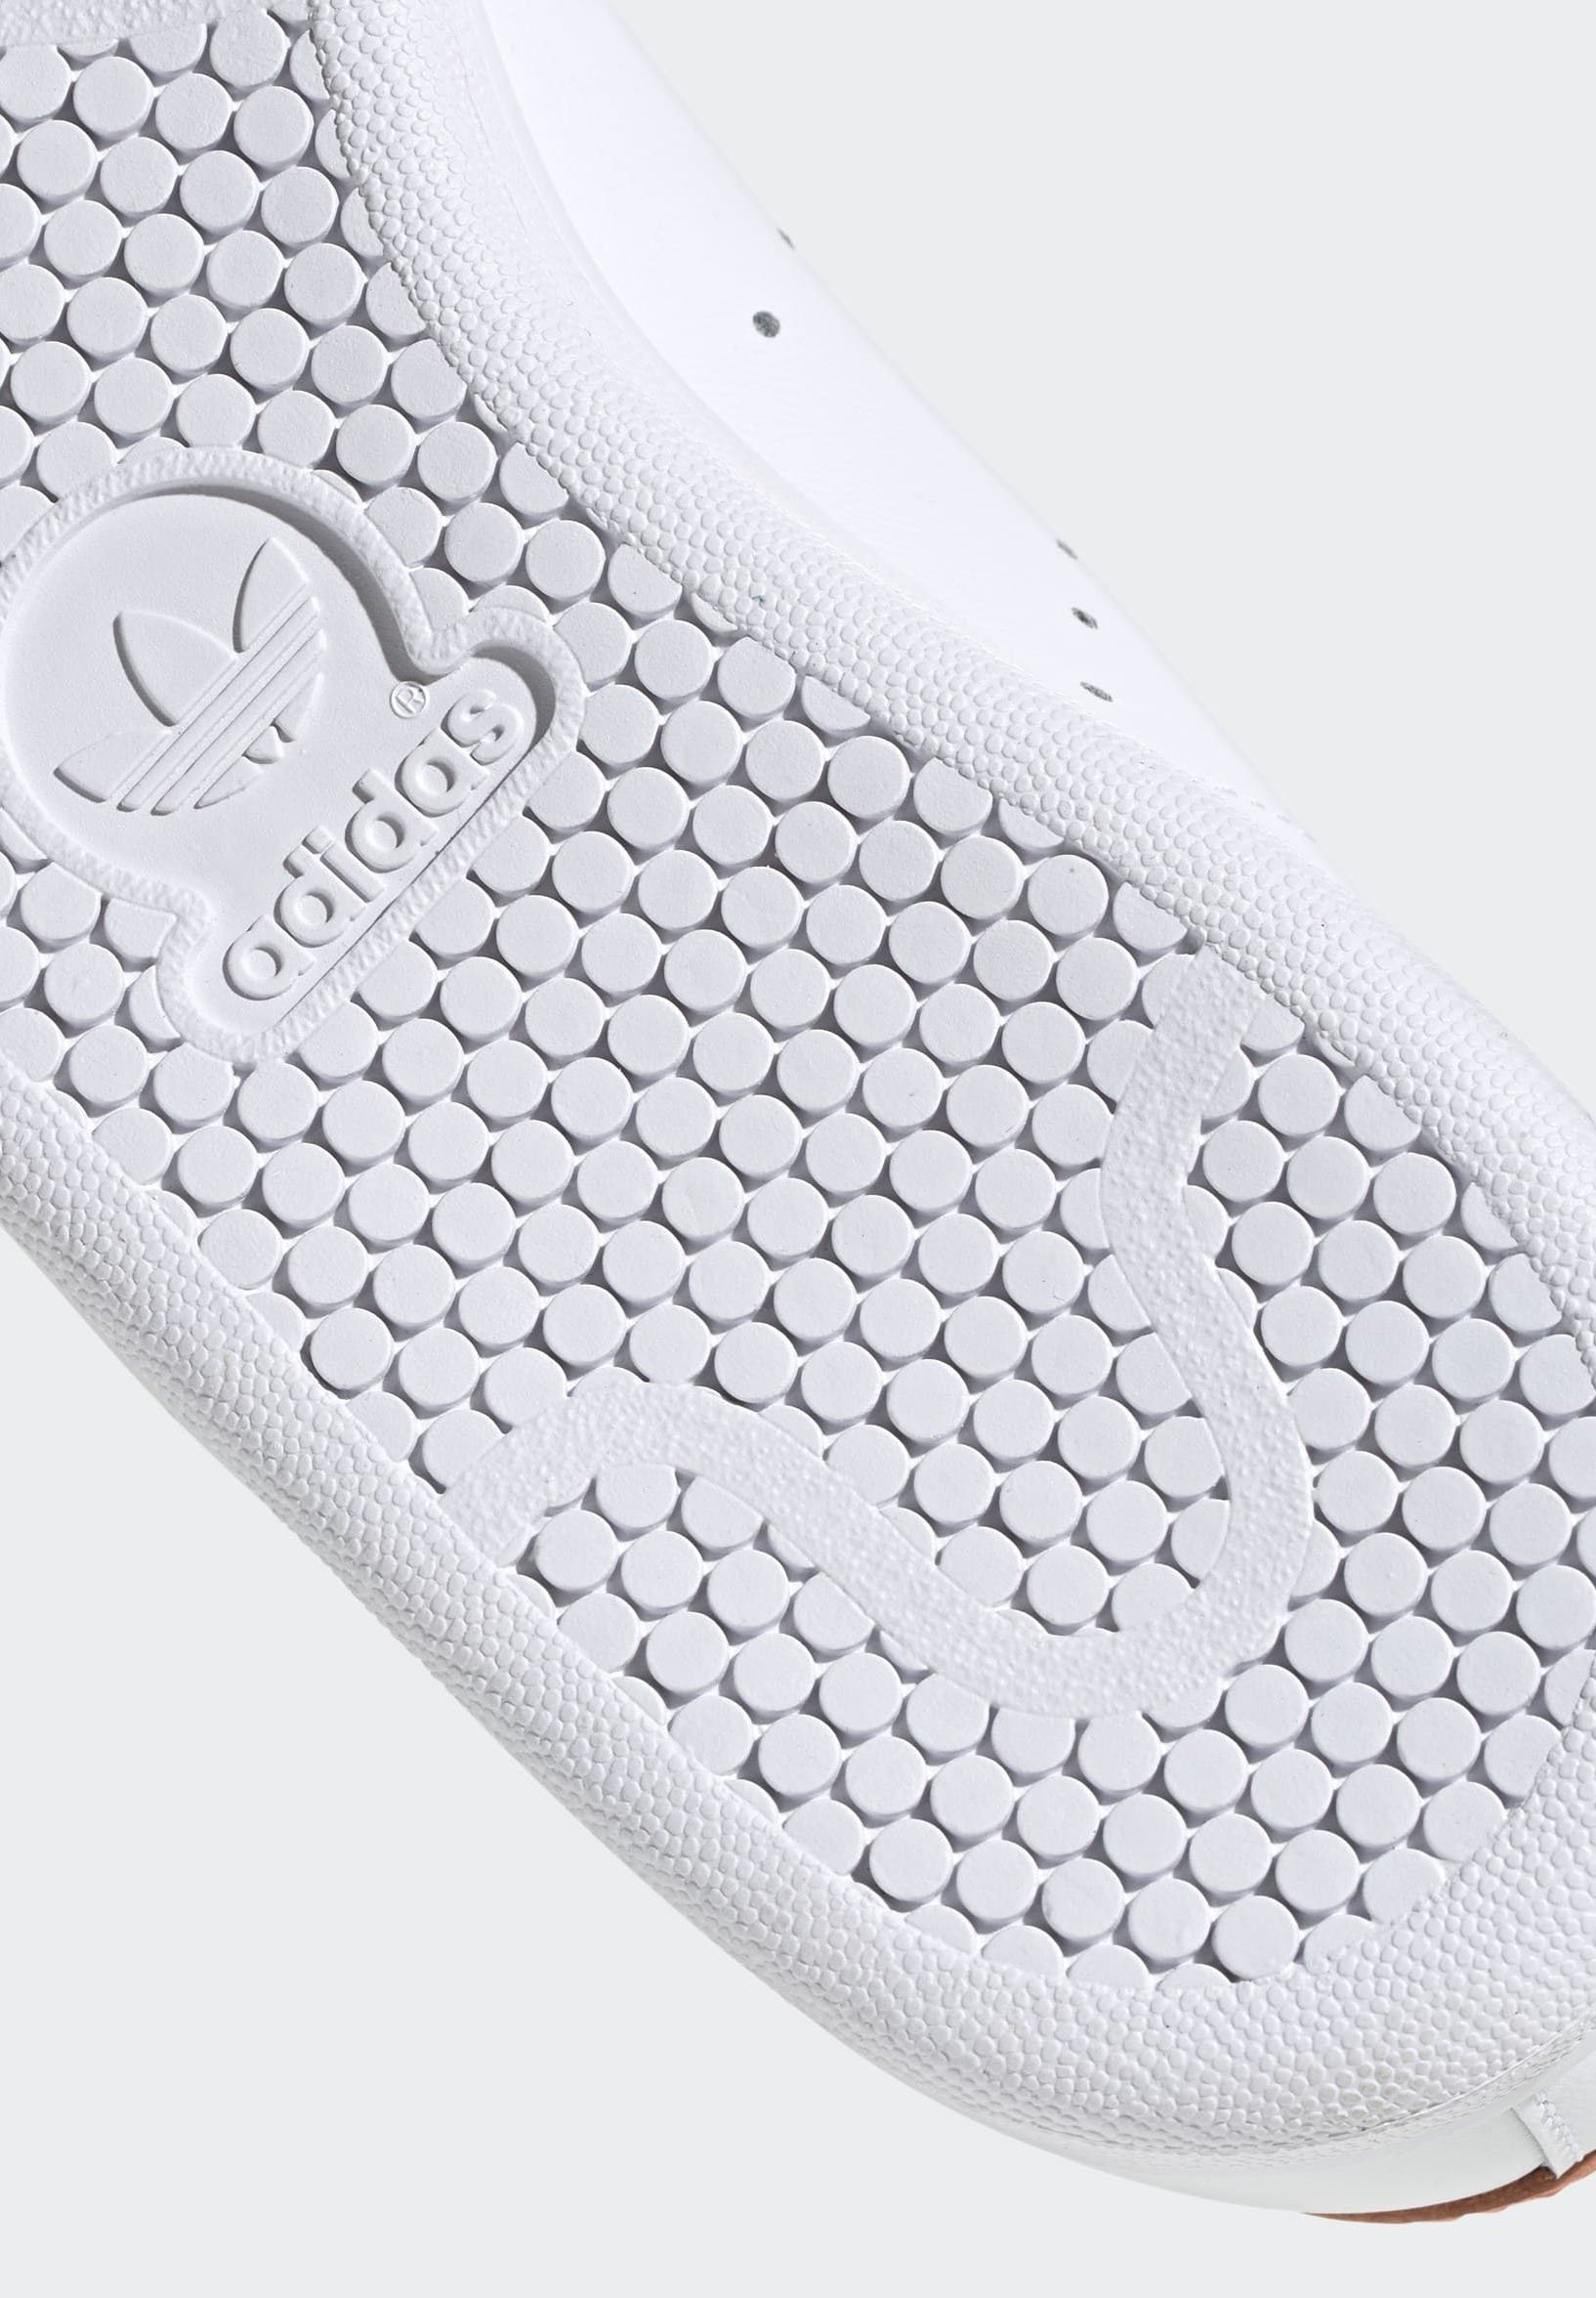 Adidas Originals Stan Smith Shoes - Sneakers White